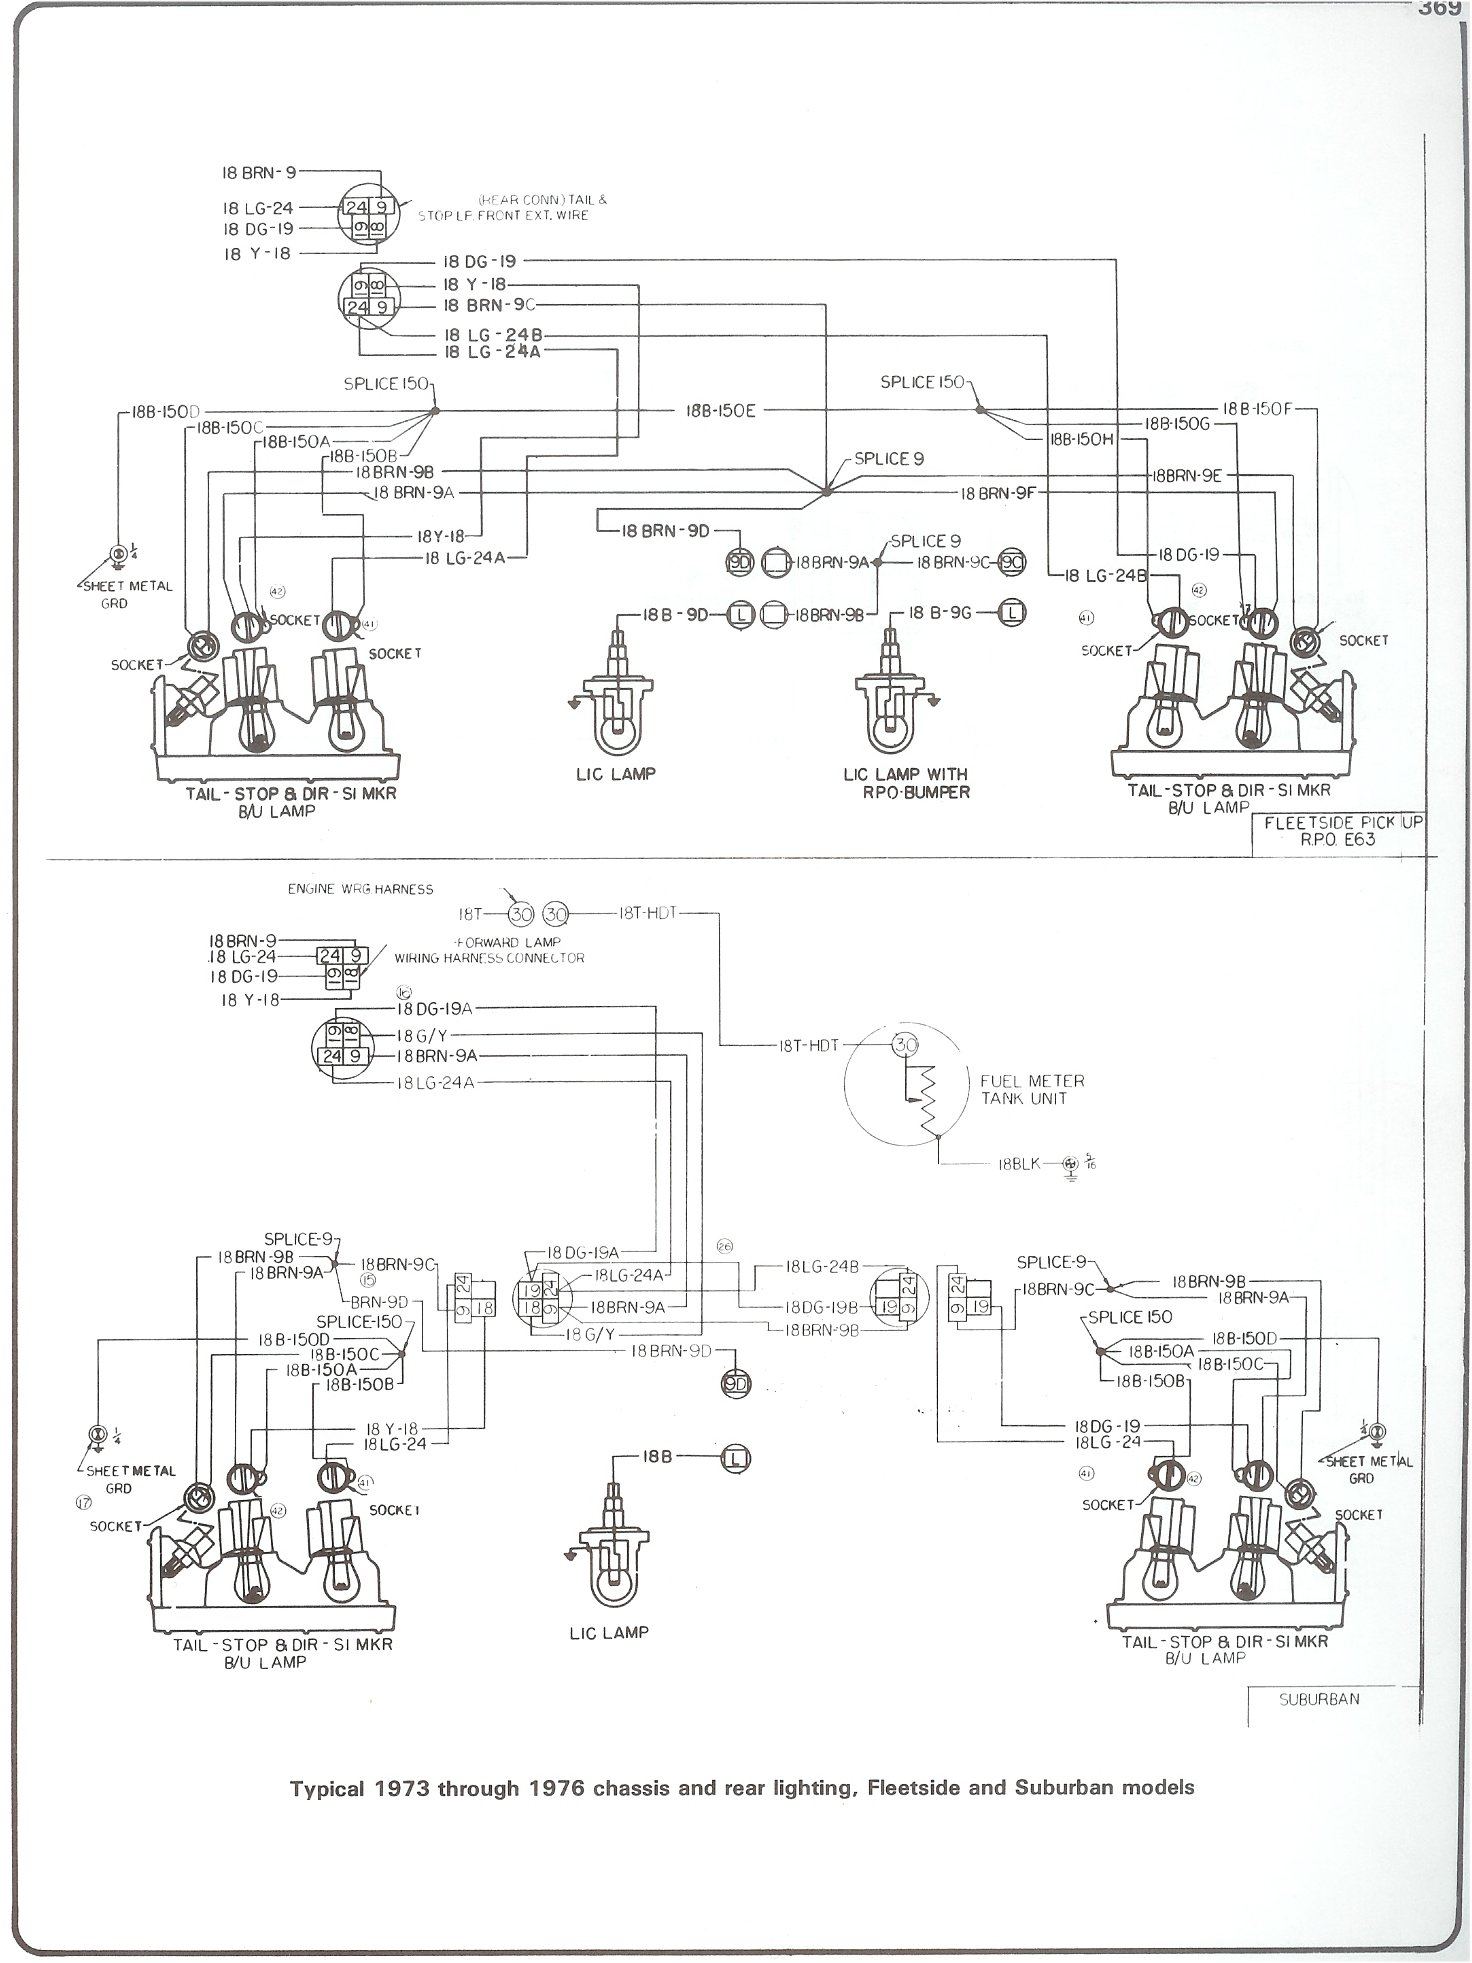 2010 Chevy Truck Wiring Harness Diagram